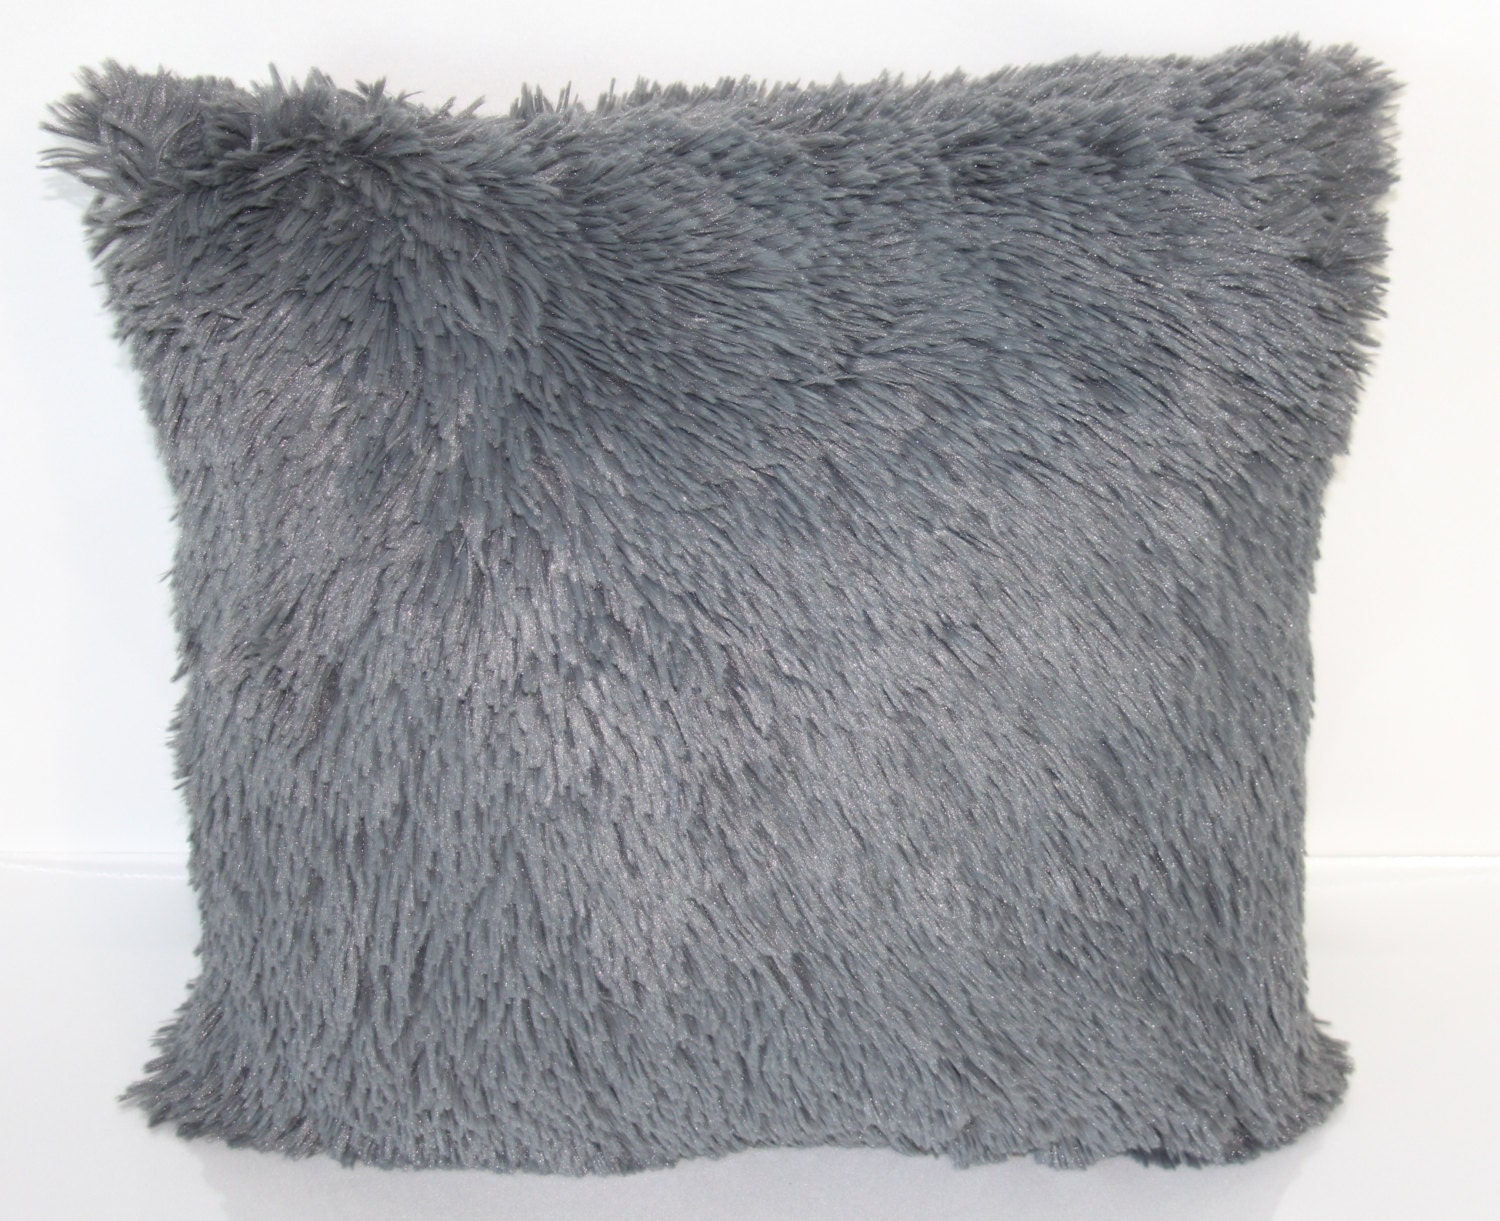 Shag Throw Pillow Grey Shag Throw Pillow Fluffy By